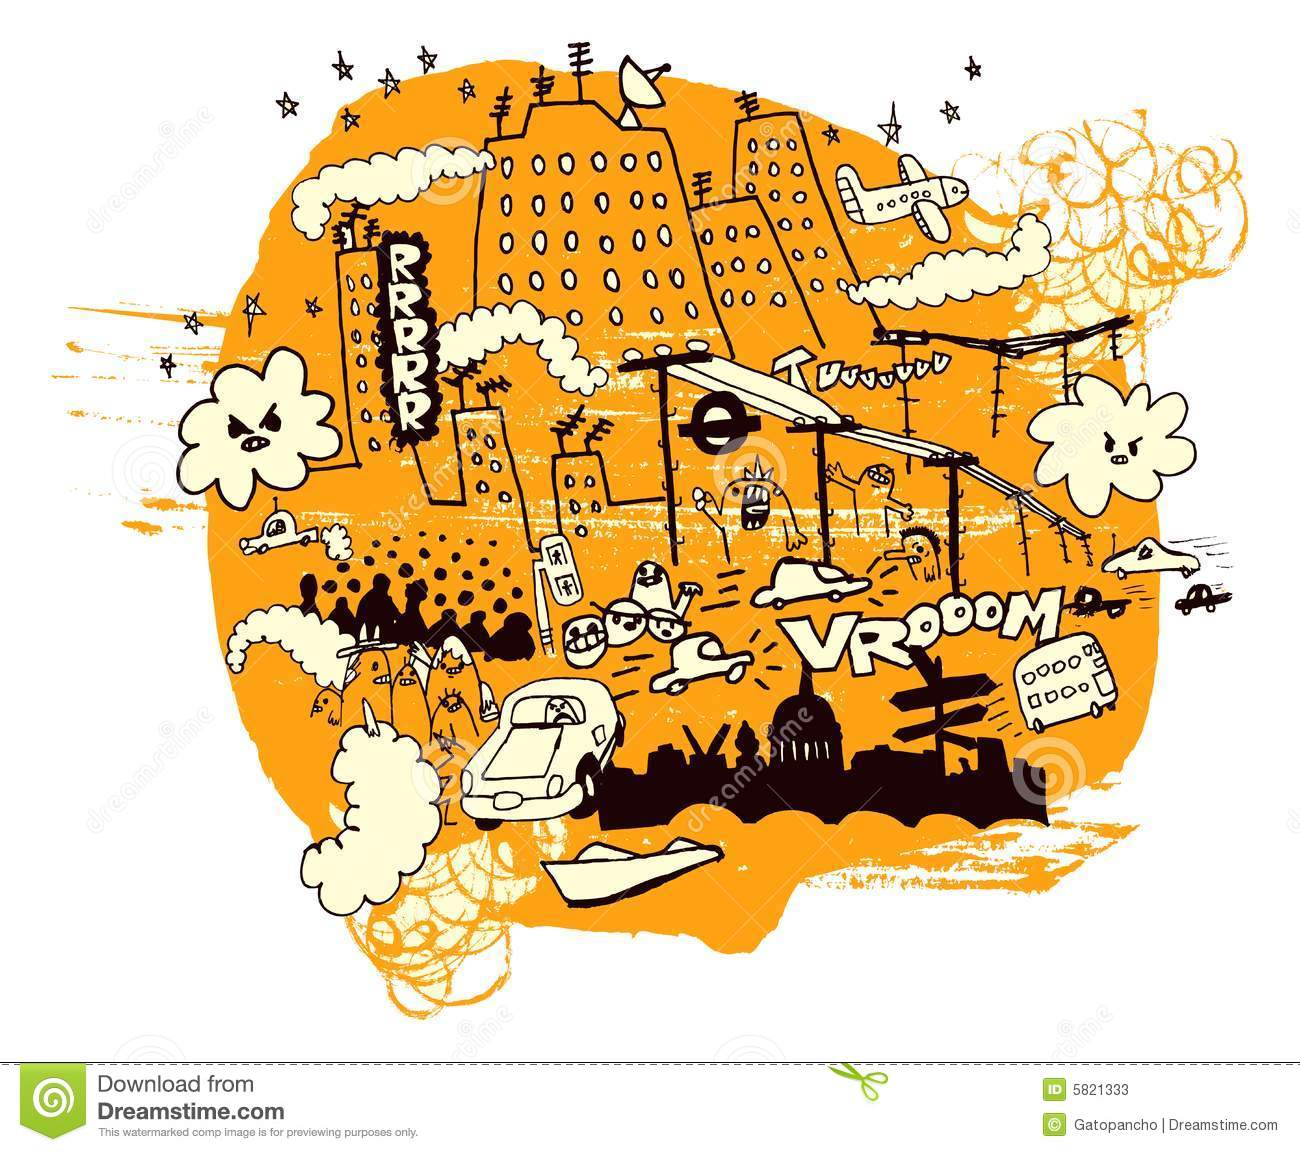 noise pollution clipart images images noise pollution clipart images